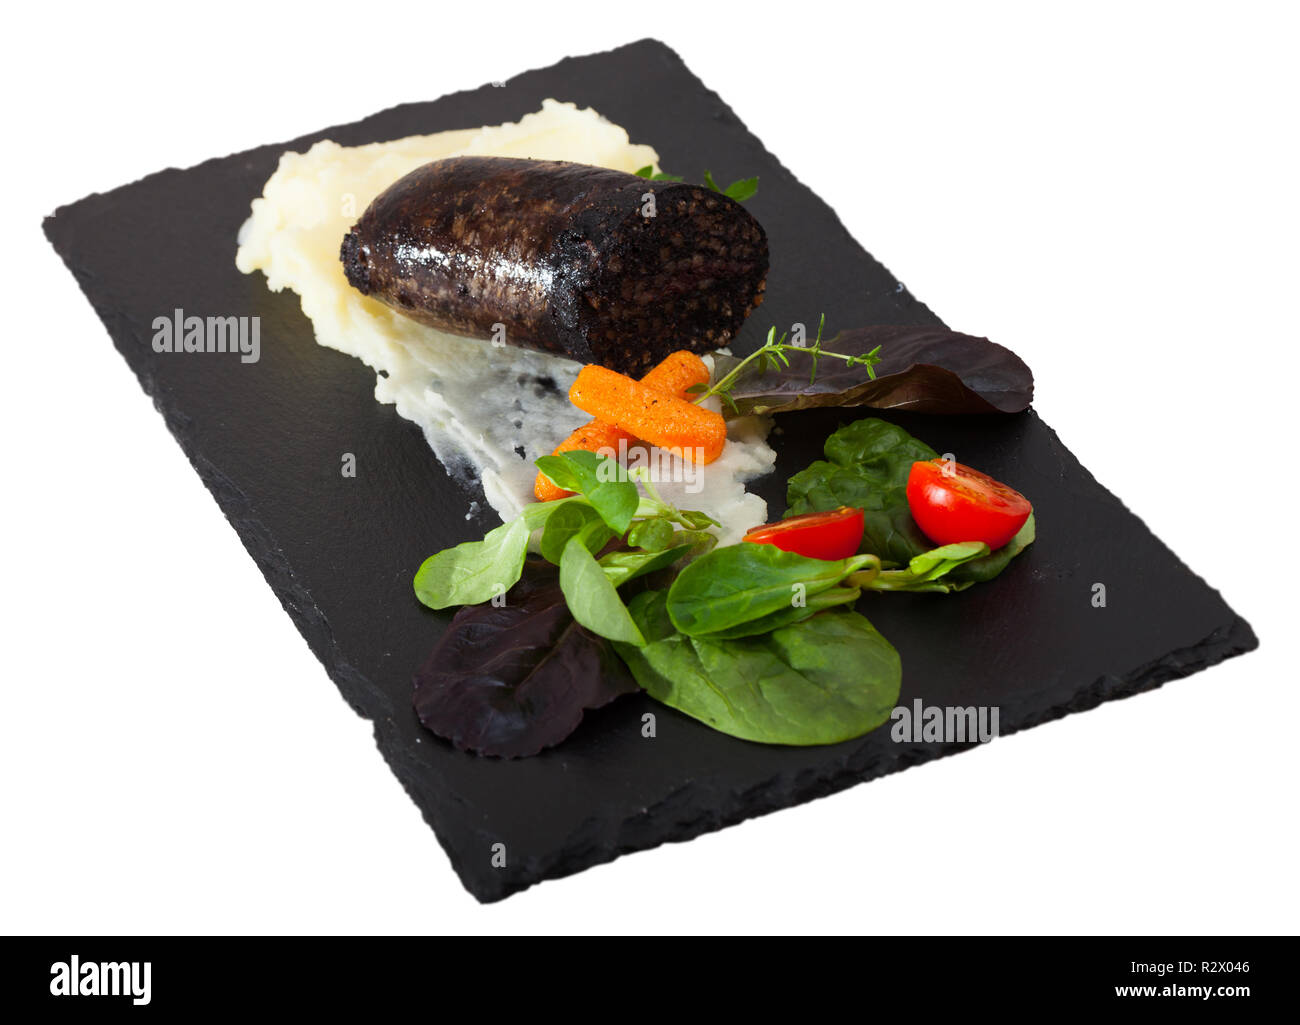 Fried morcilla (blood sausage with rice) served on white plate with pureed potatoes, vegetables and aromatic herbs. Isolated over white background - Stock Image